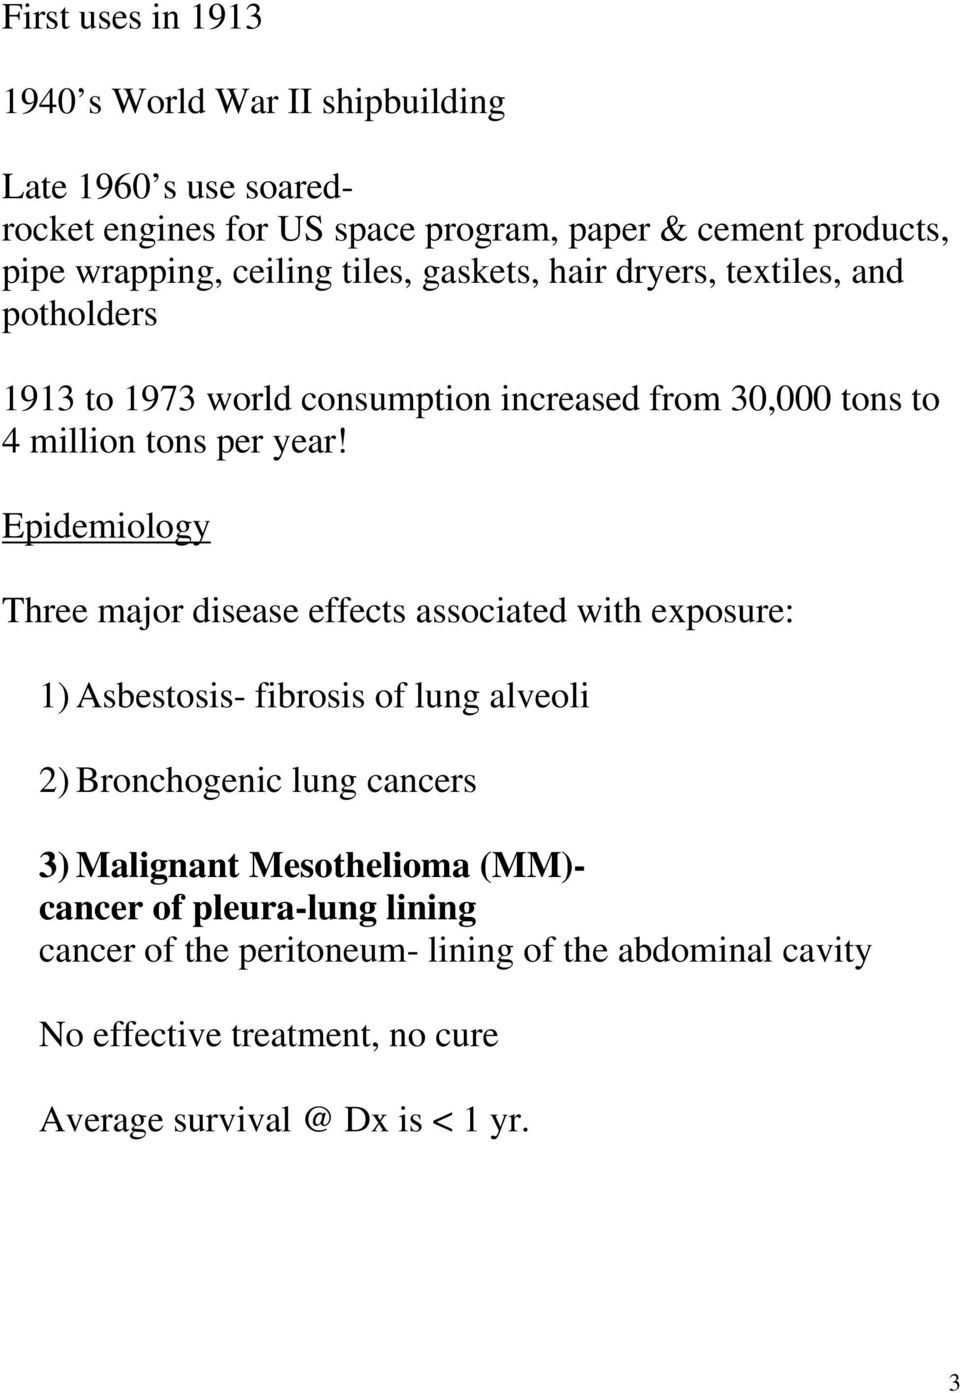 Epidemiology Three major disease effects associated with exposure: 1) Asbestosis- fibrosis of lung alveoli 2) Bronchogenic lung cancers 3) Malignant